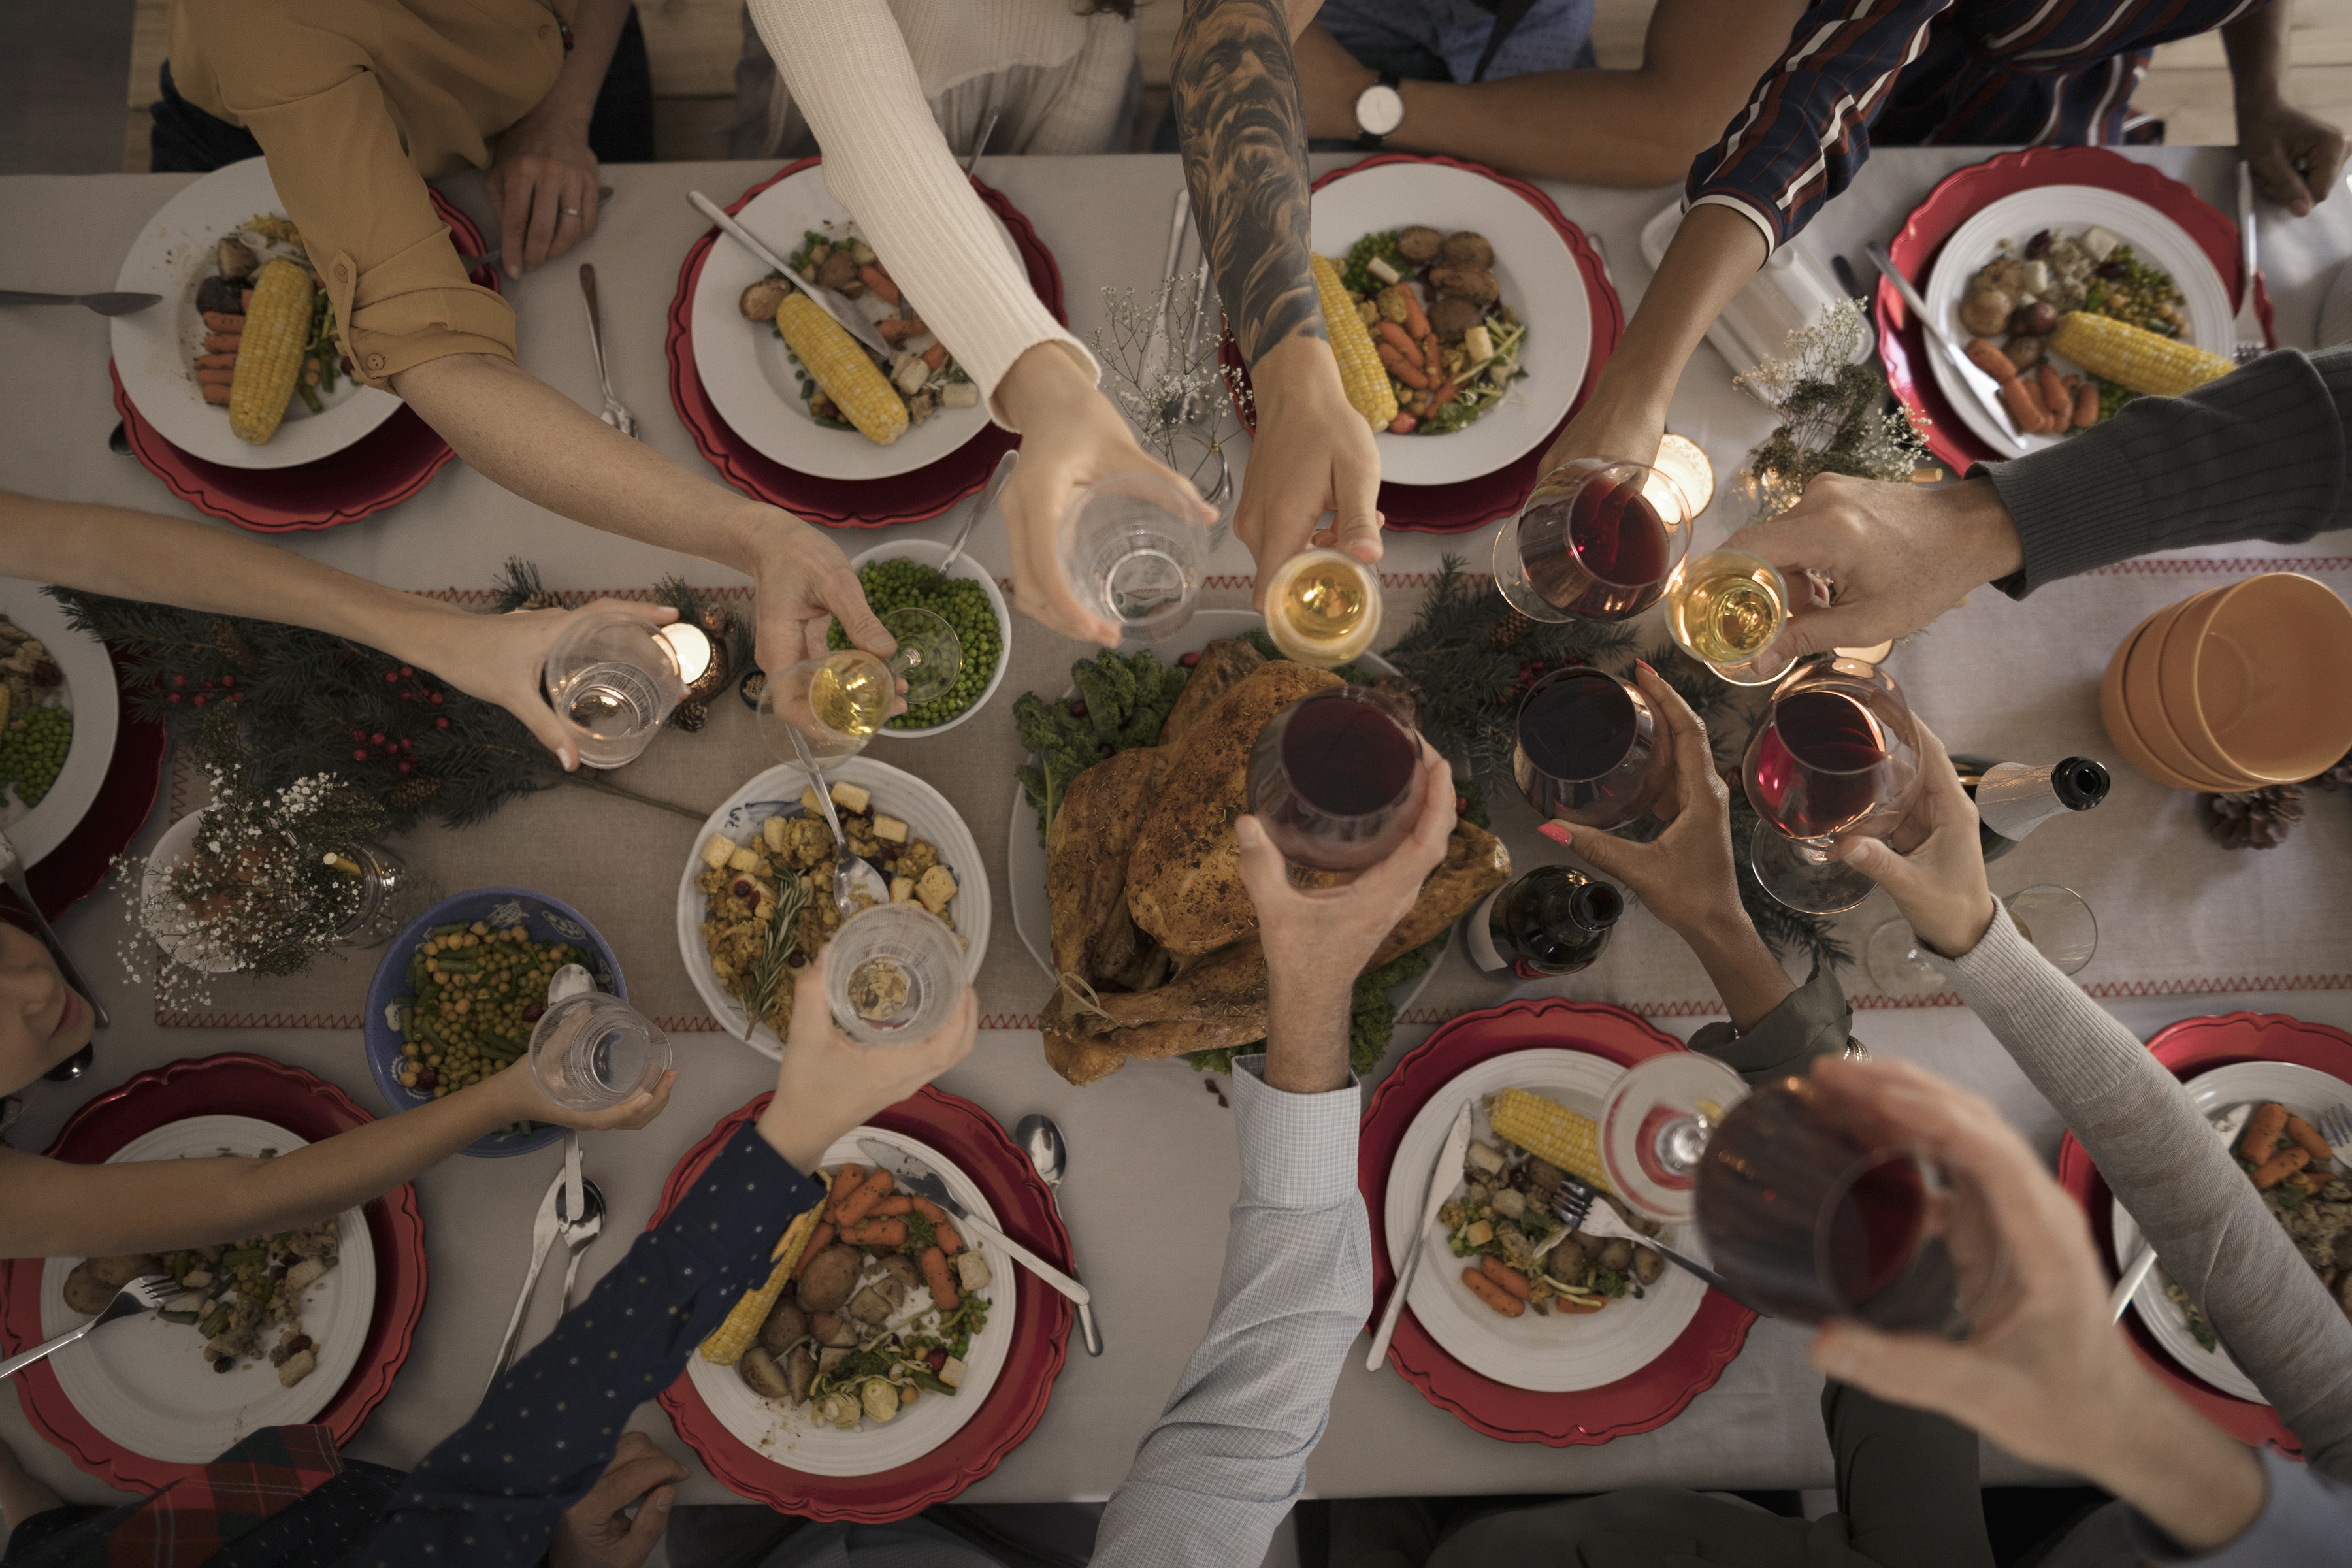 Overhead view family toasting wine glasses at candlelight Christmas turkey dinner at table. (Hero Images/Getty Images)